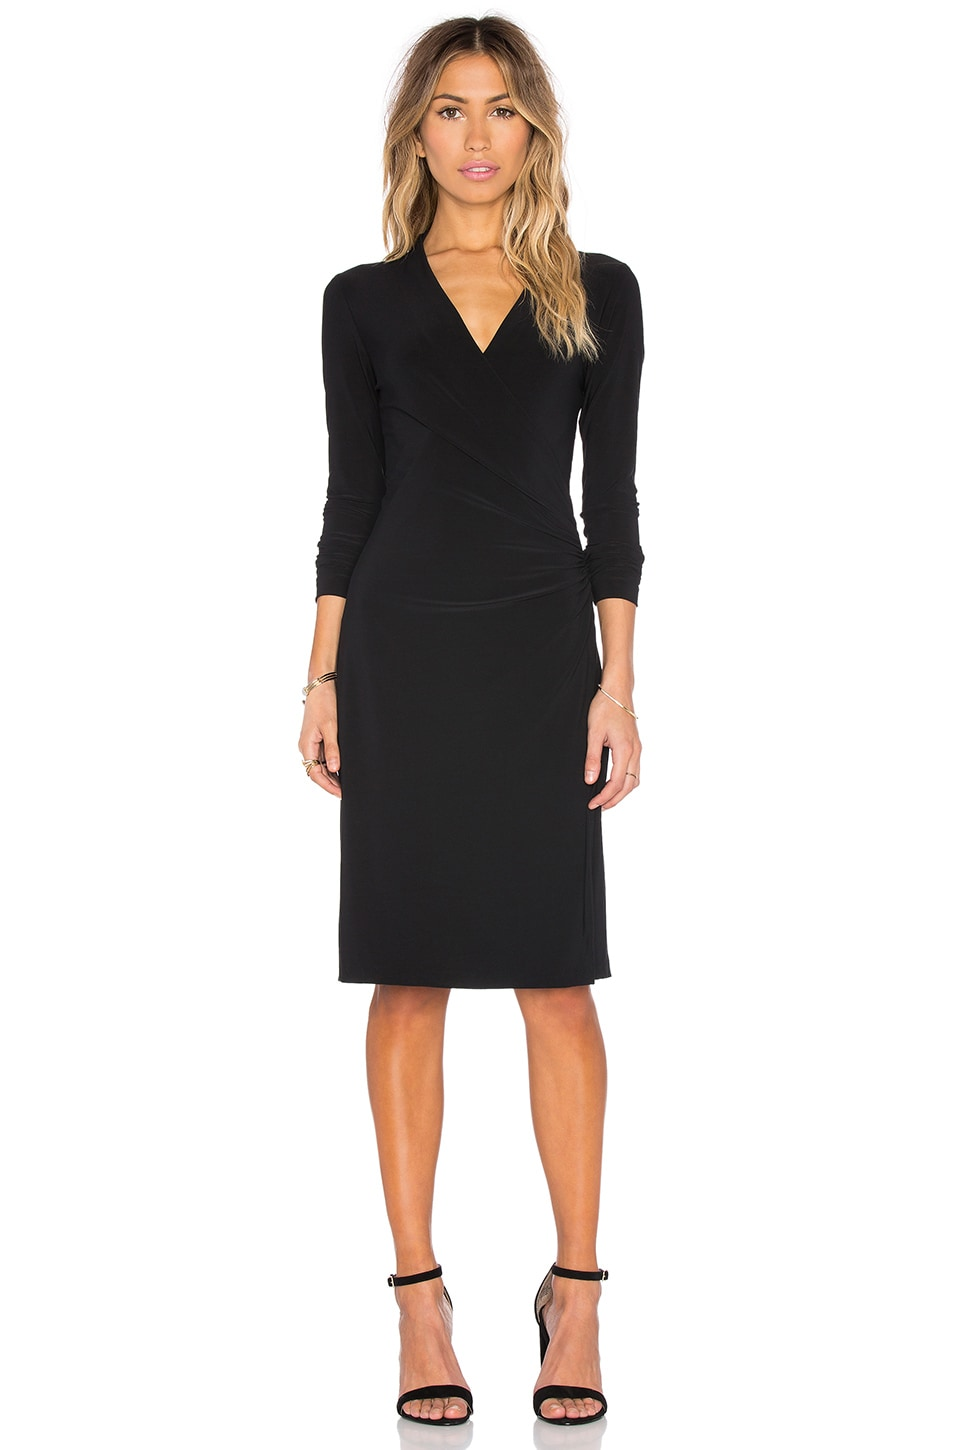 Norma Kamali KAMALIKULTURE Long Sleeve Side Draped Dress in Solid Black